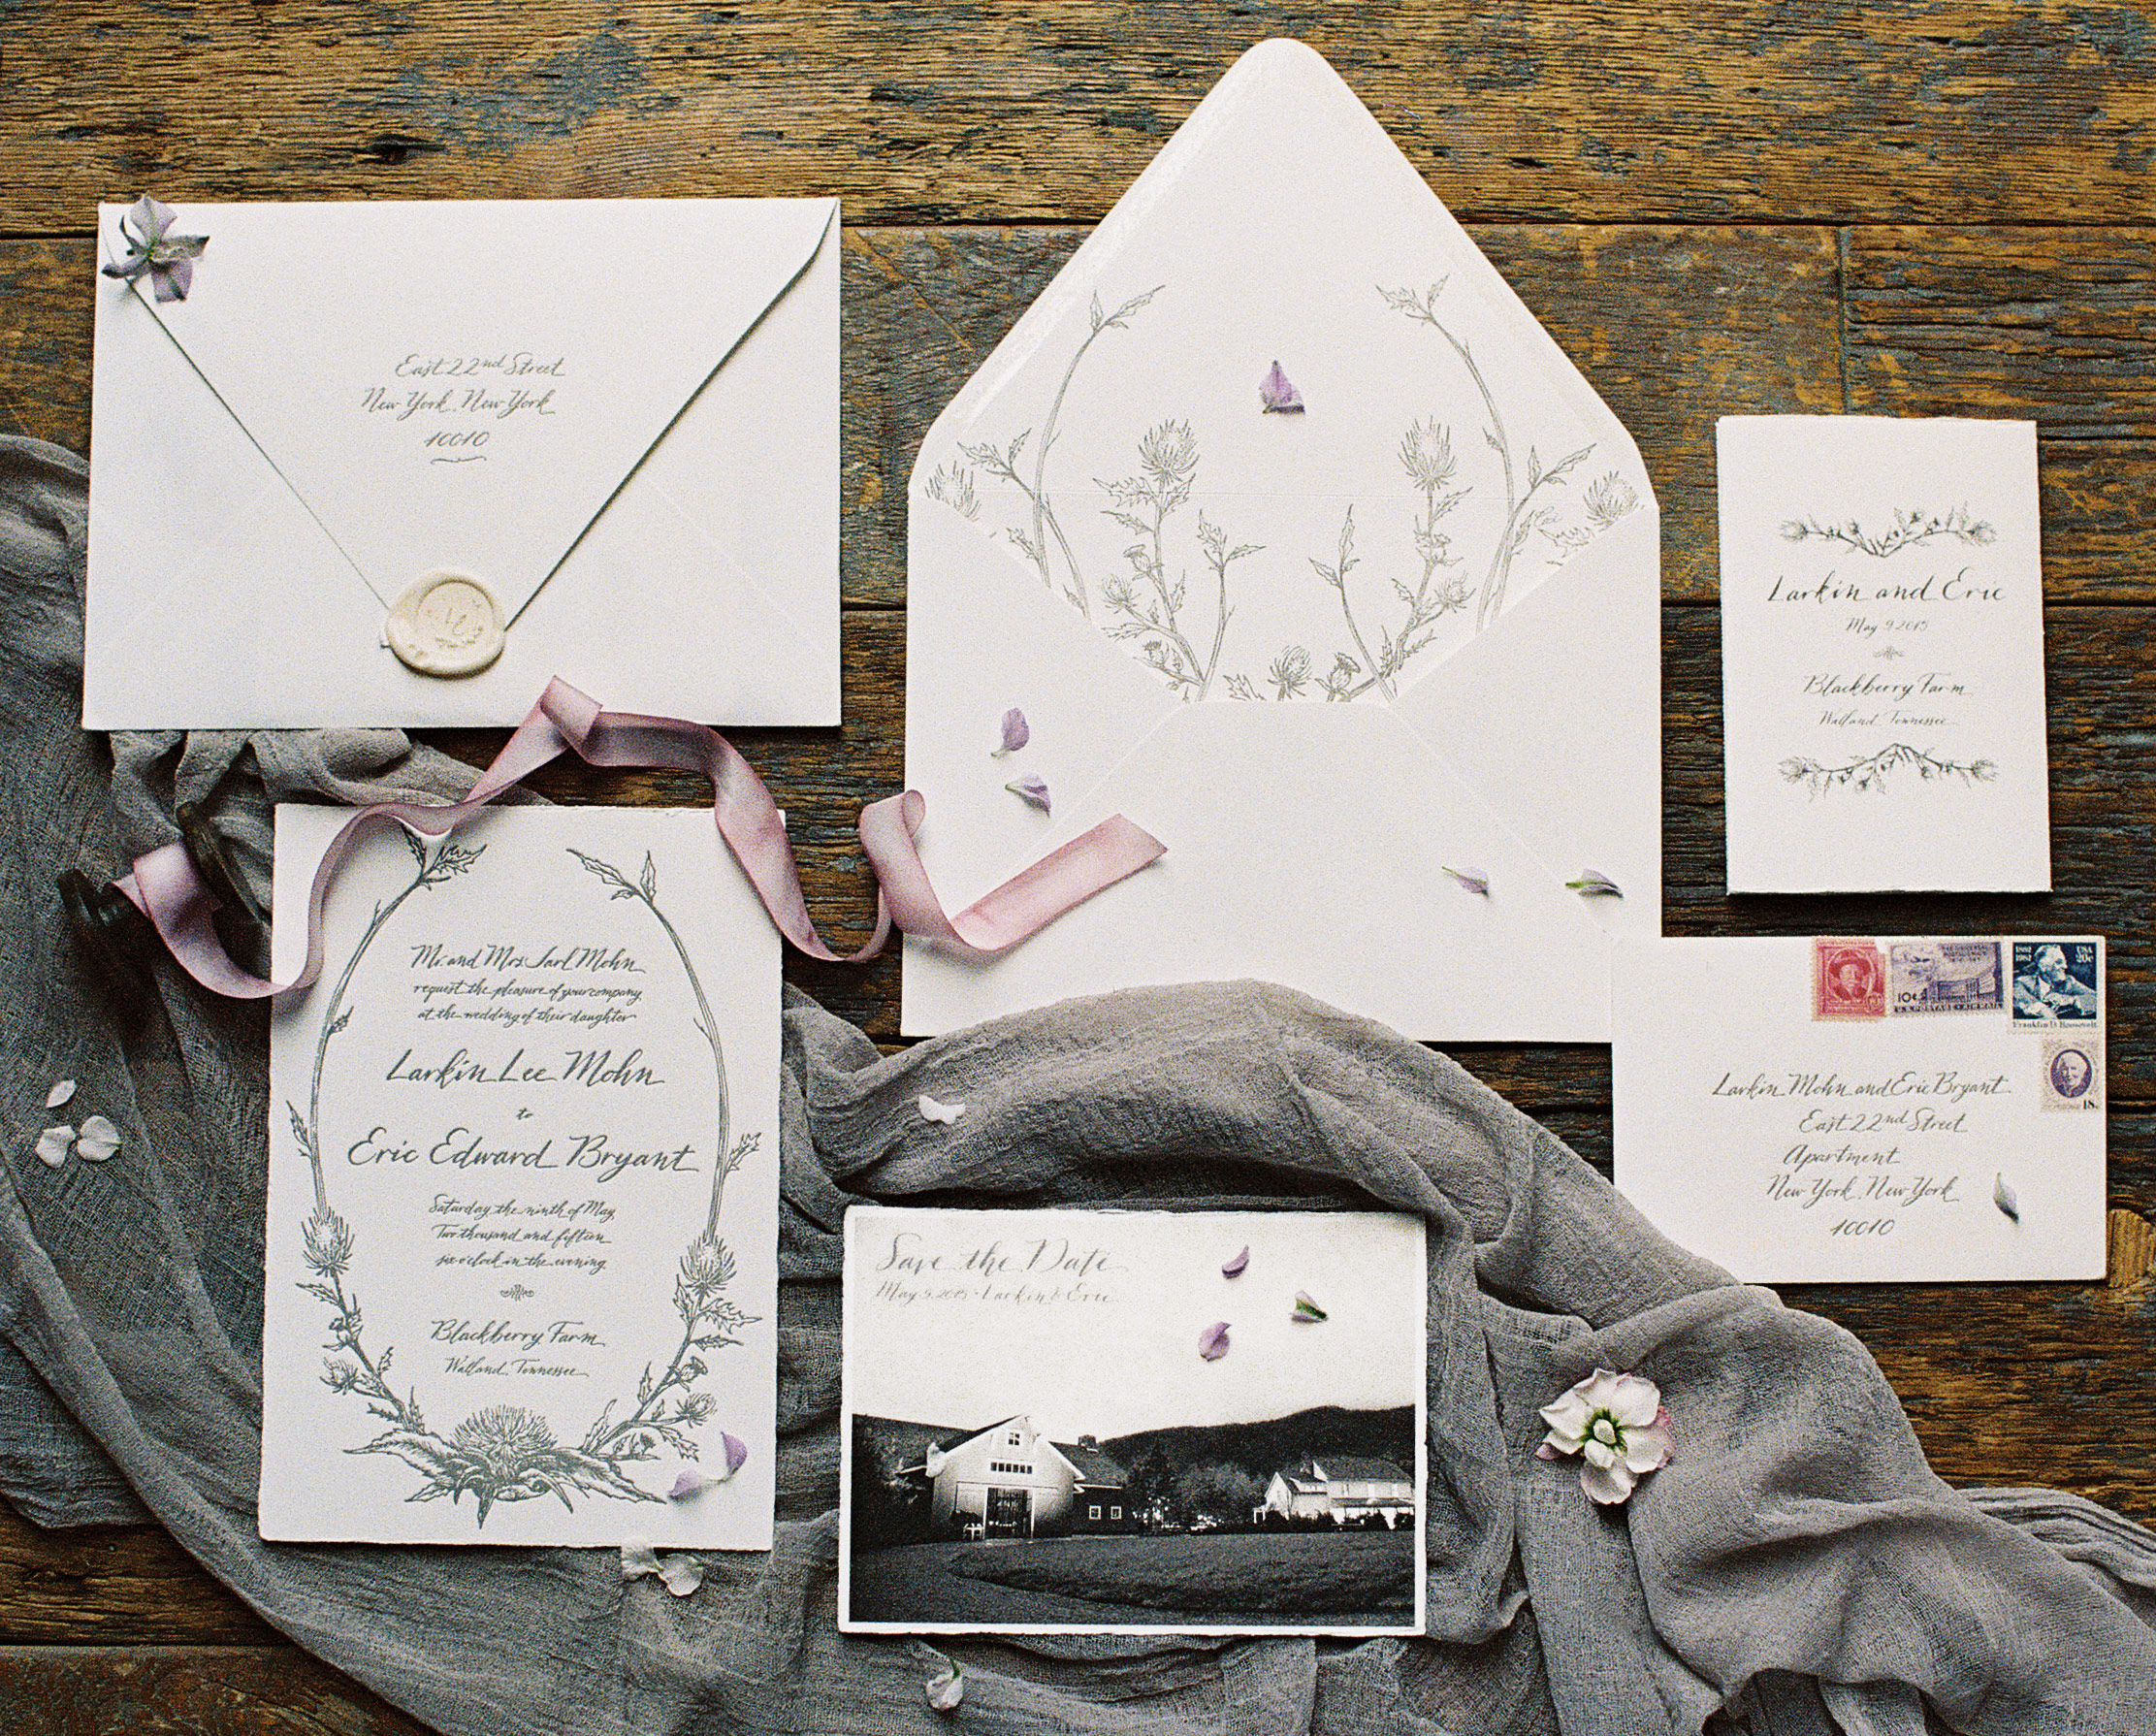 Here's What to Do If You Don't Have Enough Time to Have Your Invitations Calligraphed